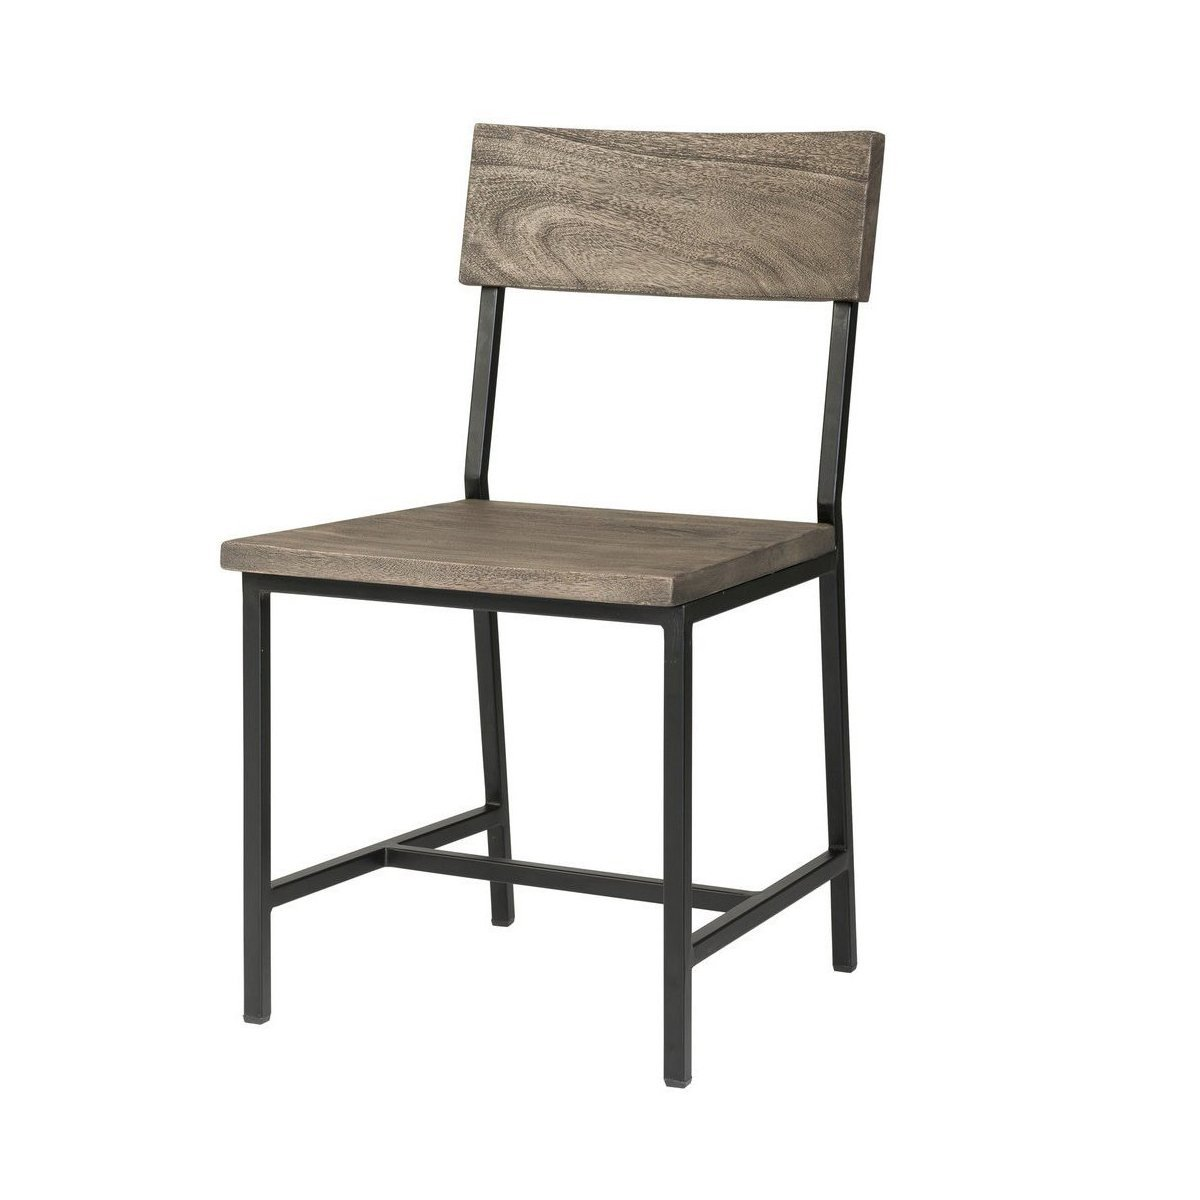 LH Edge Dining Chair Dining Chairs LH